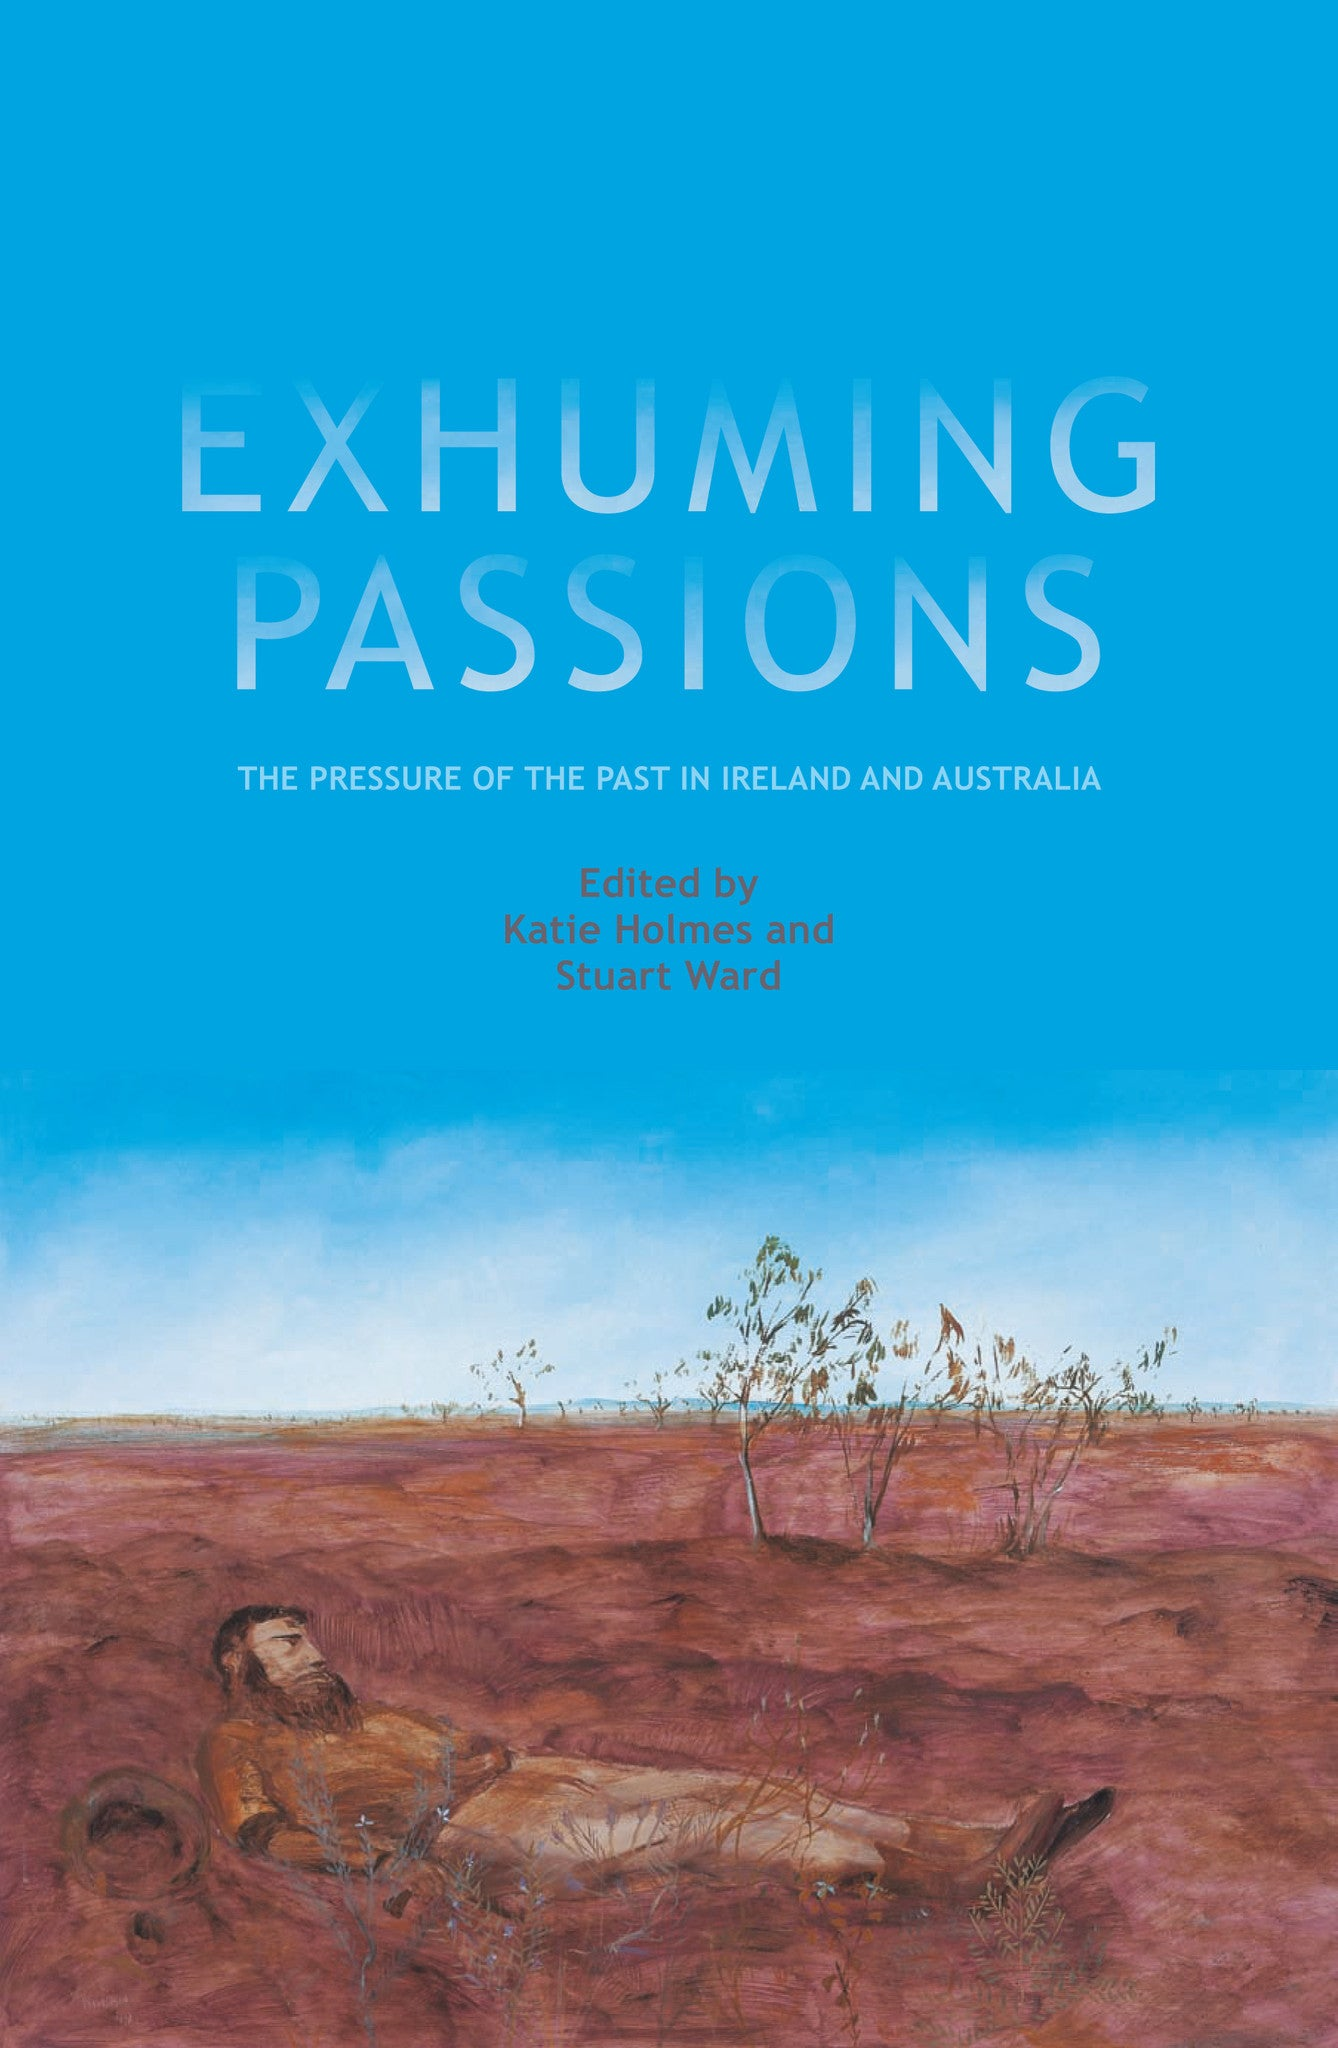 Exhuming Passions: The pressure of the past in Ireland and Australia